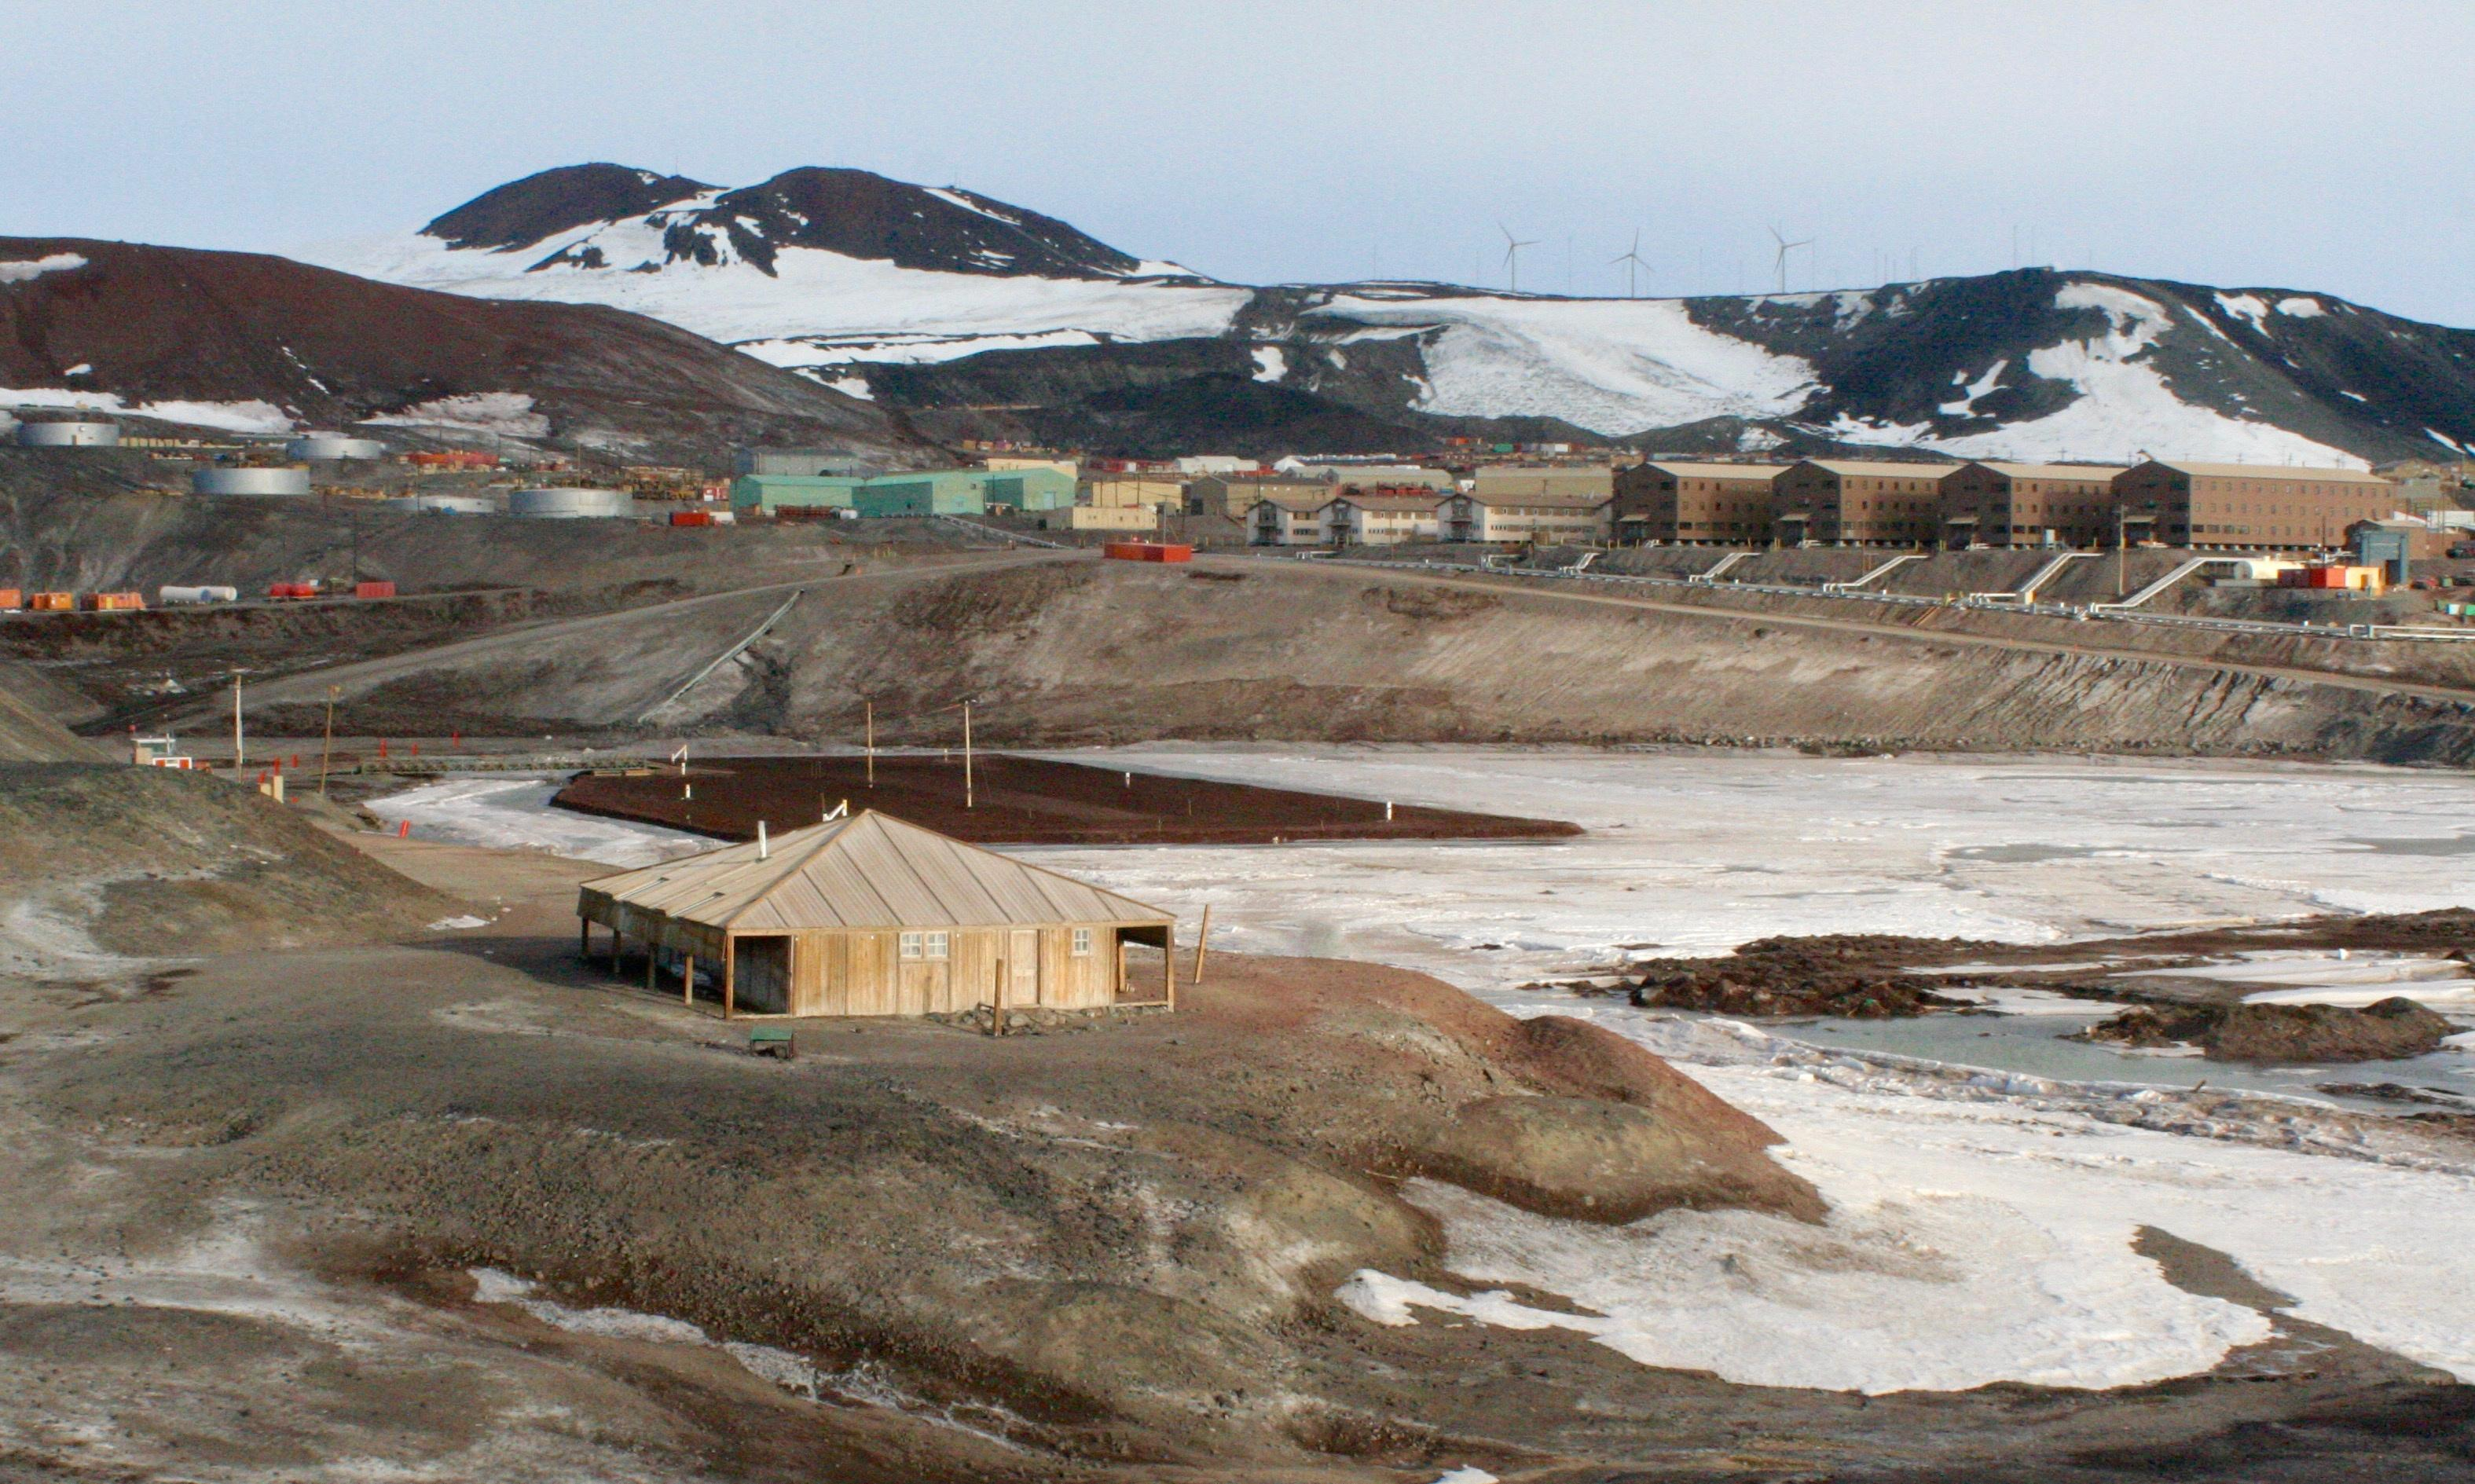 Two killed in accident at Antarctic research station